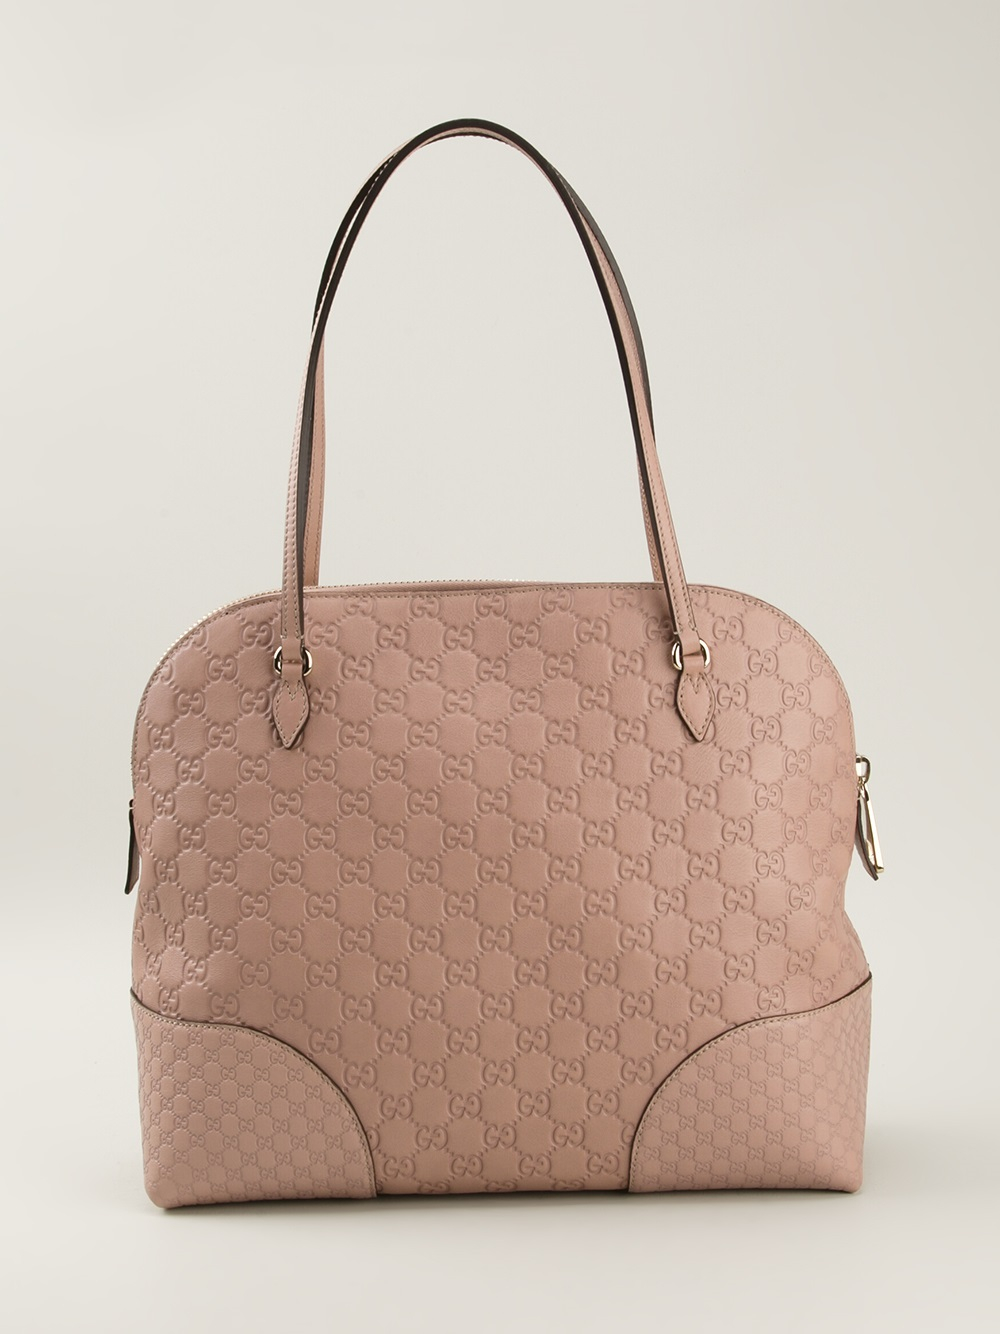 78bce041a566 Gucci Pink Bag 2014 | Stanford Center for Opportunity Policy in ...